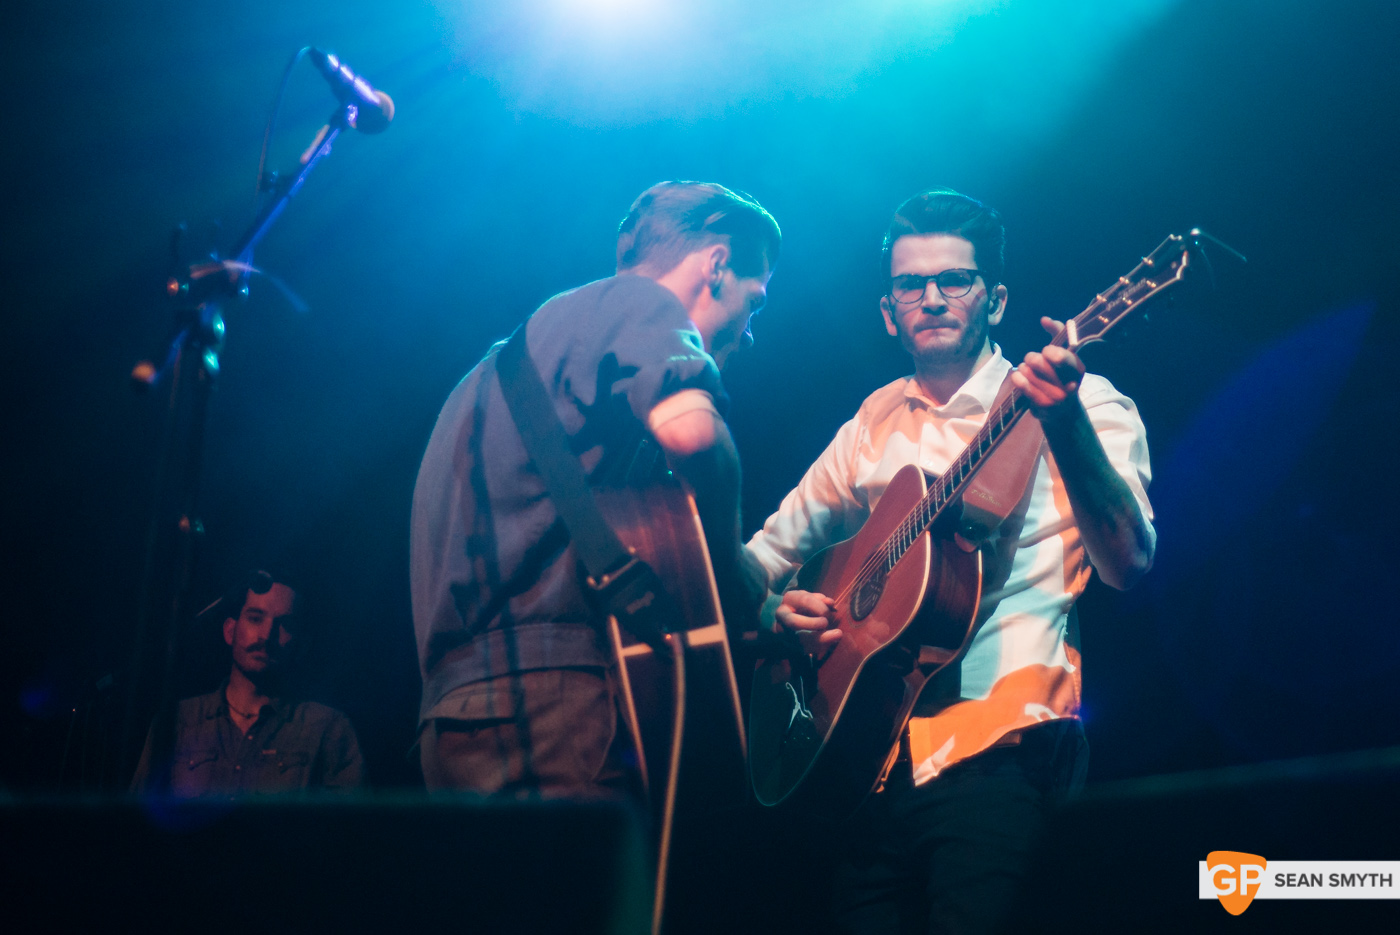 hudson-taylor-at-the-olympia-theatre-26-2-15-by-sean-smyth-8-of-26_16756755955_o